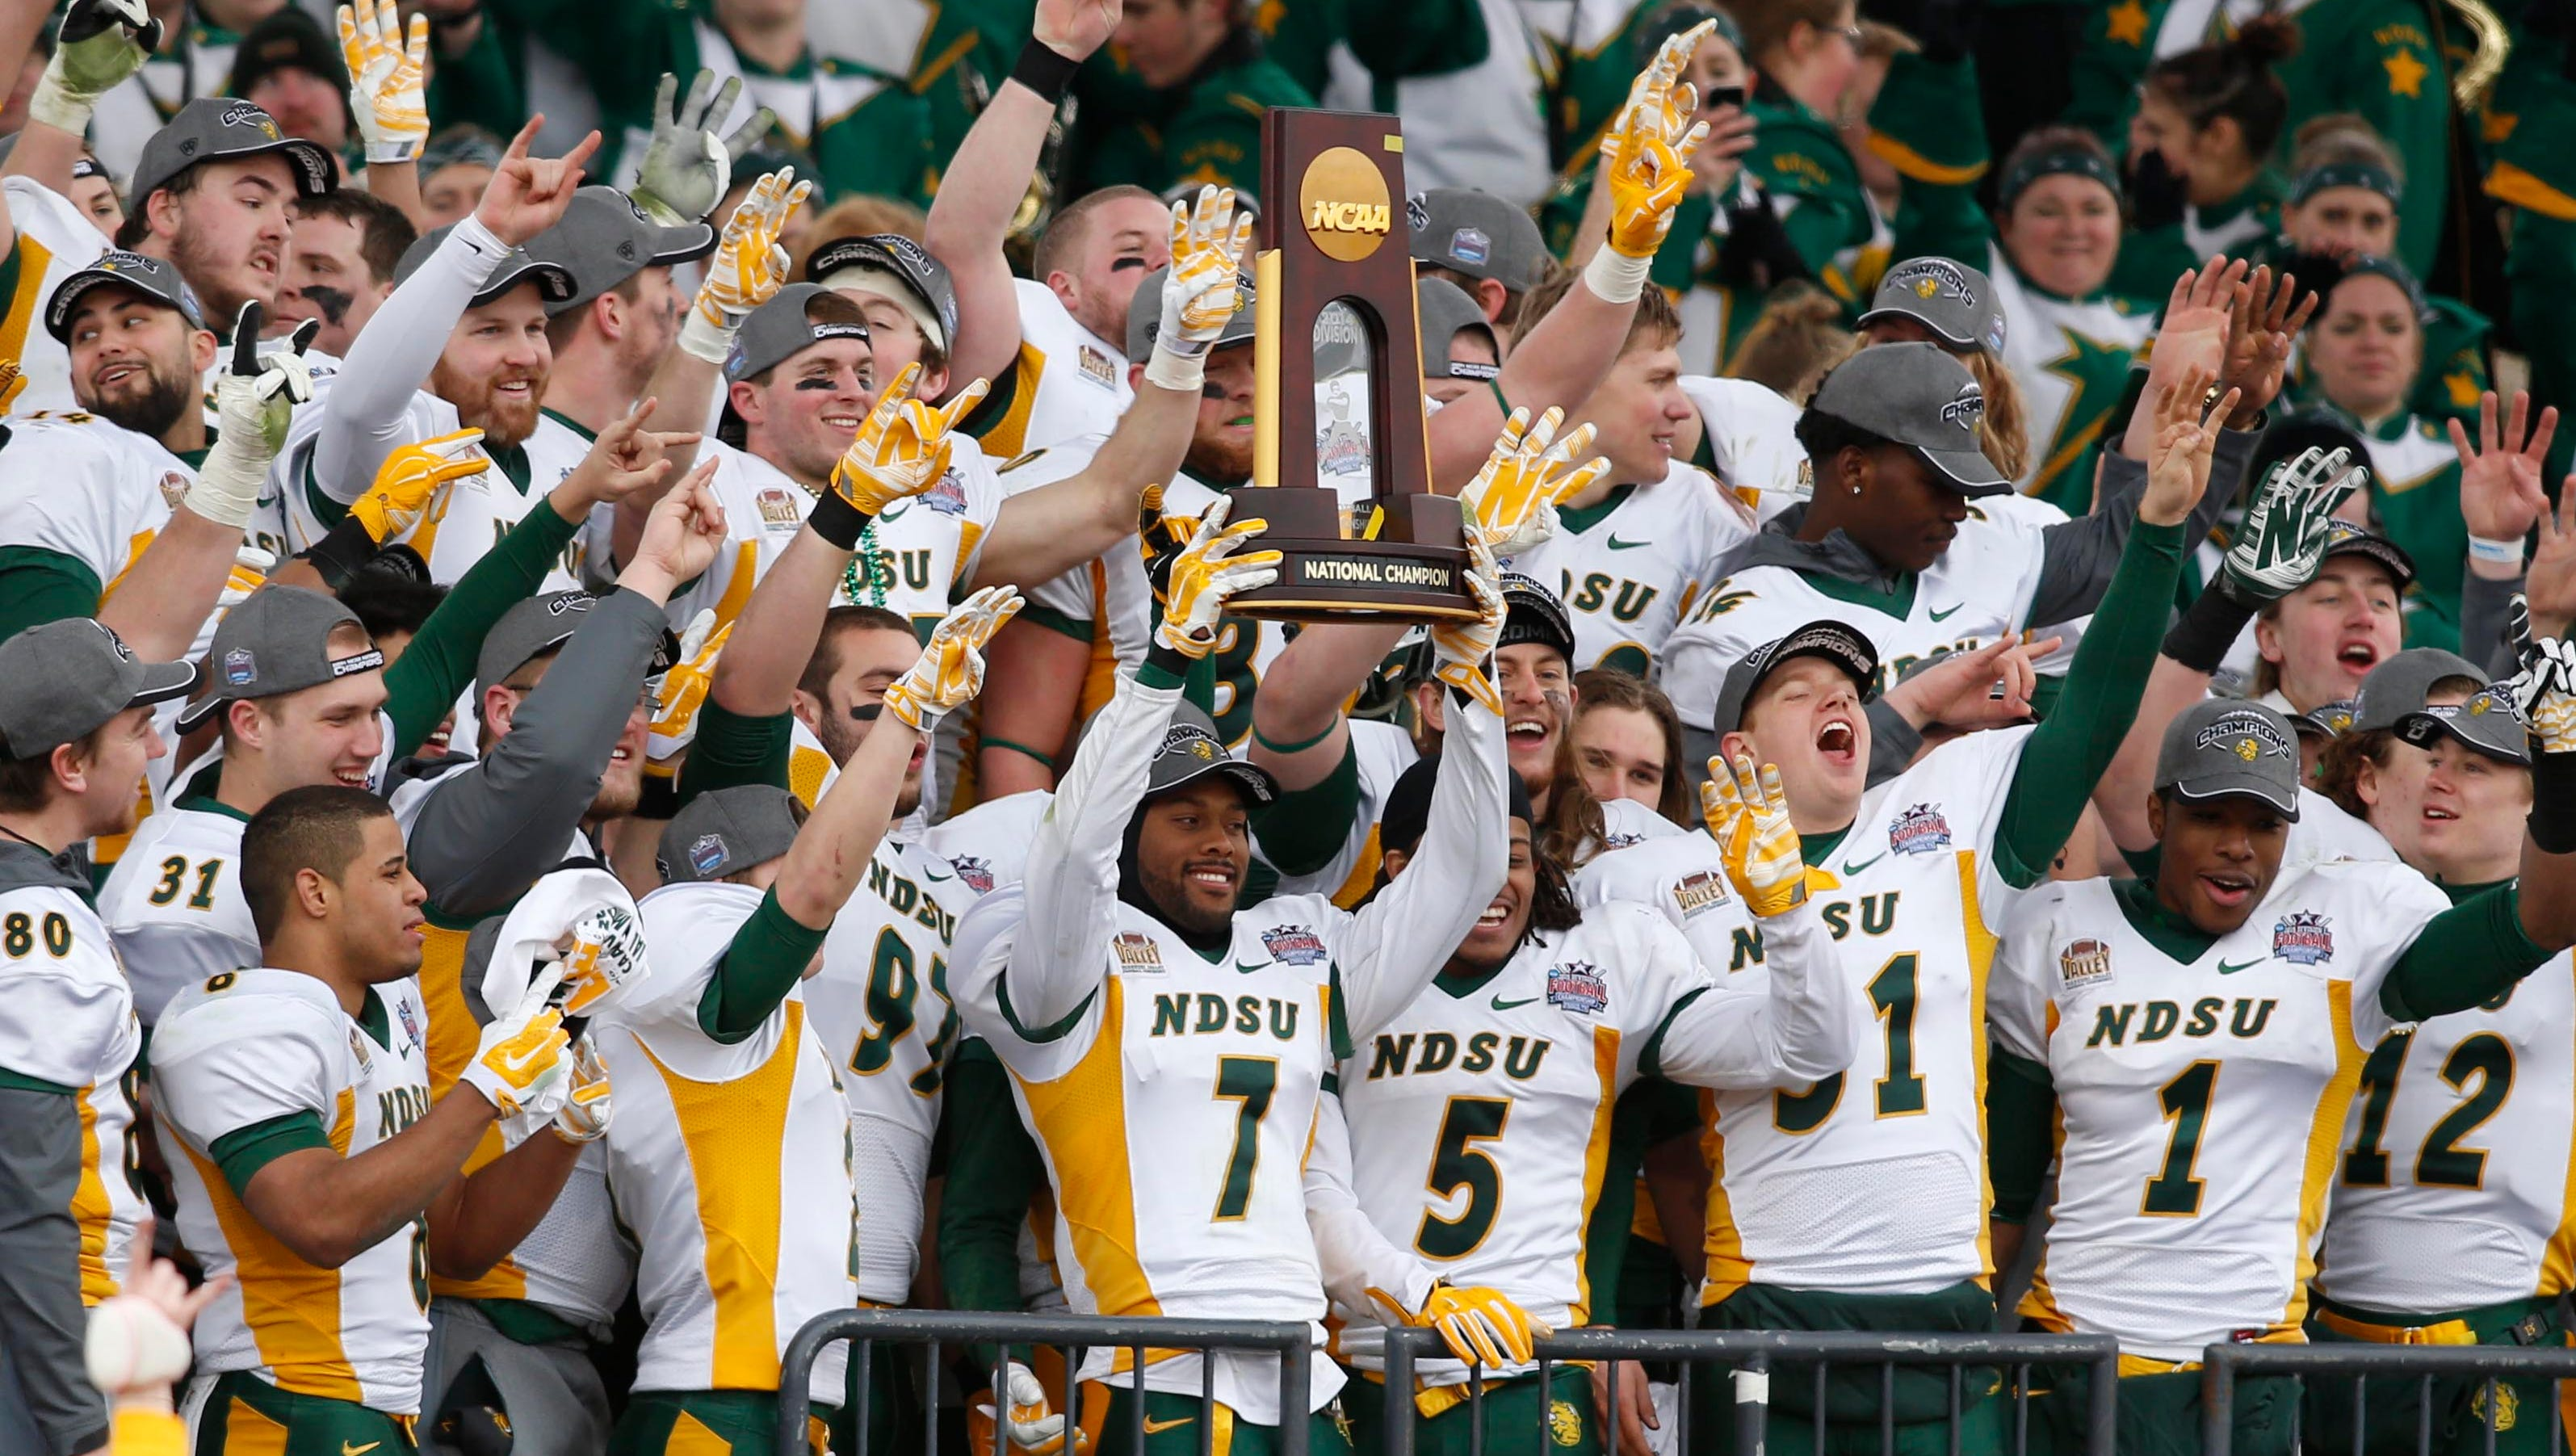 ncaa division 1 football scores college championship game